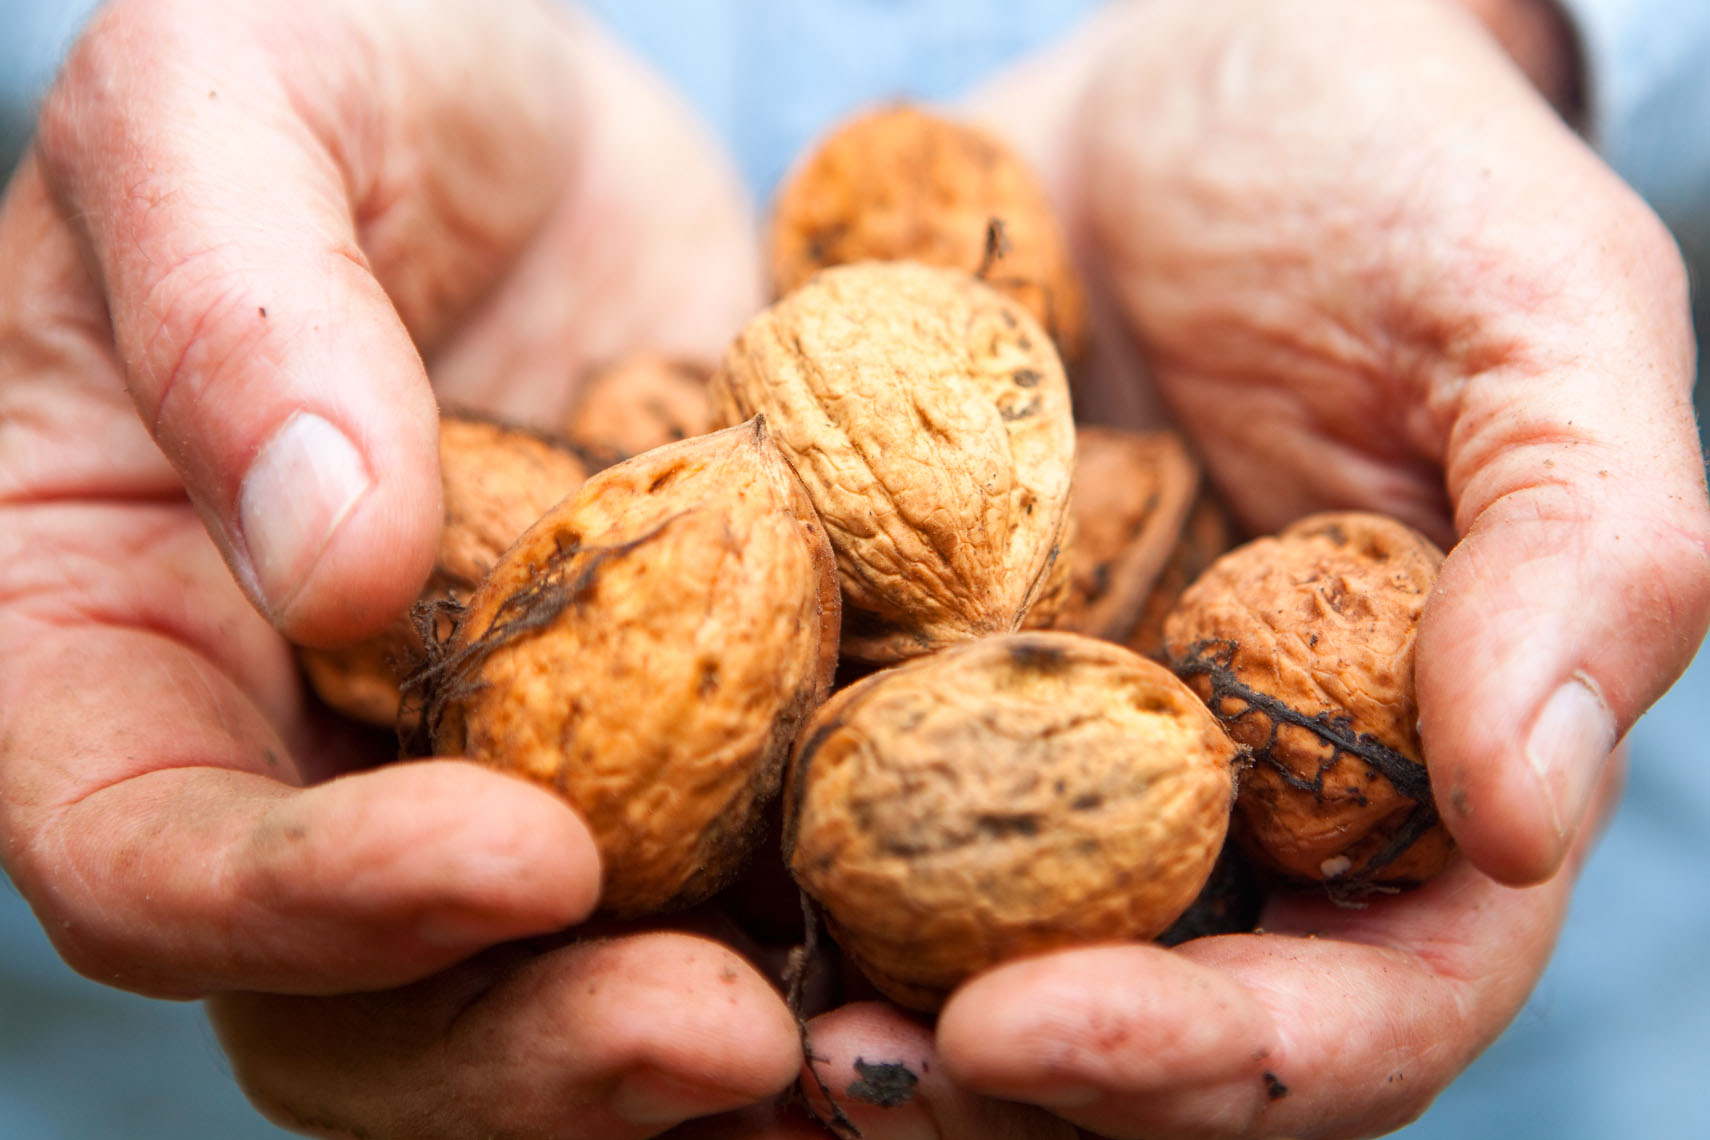 hands holding walnuts